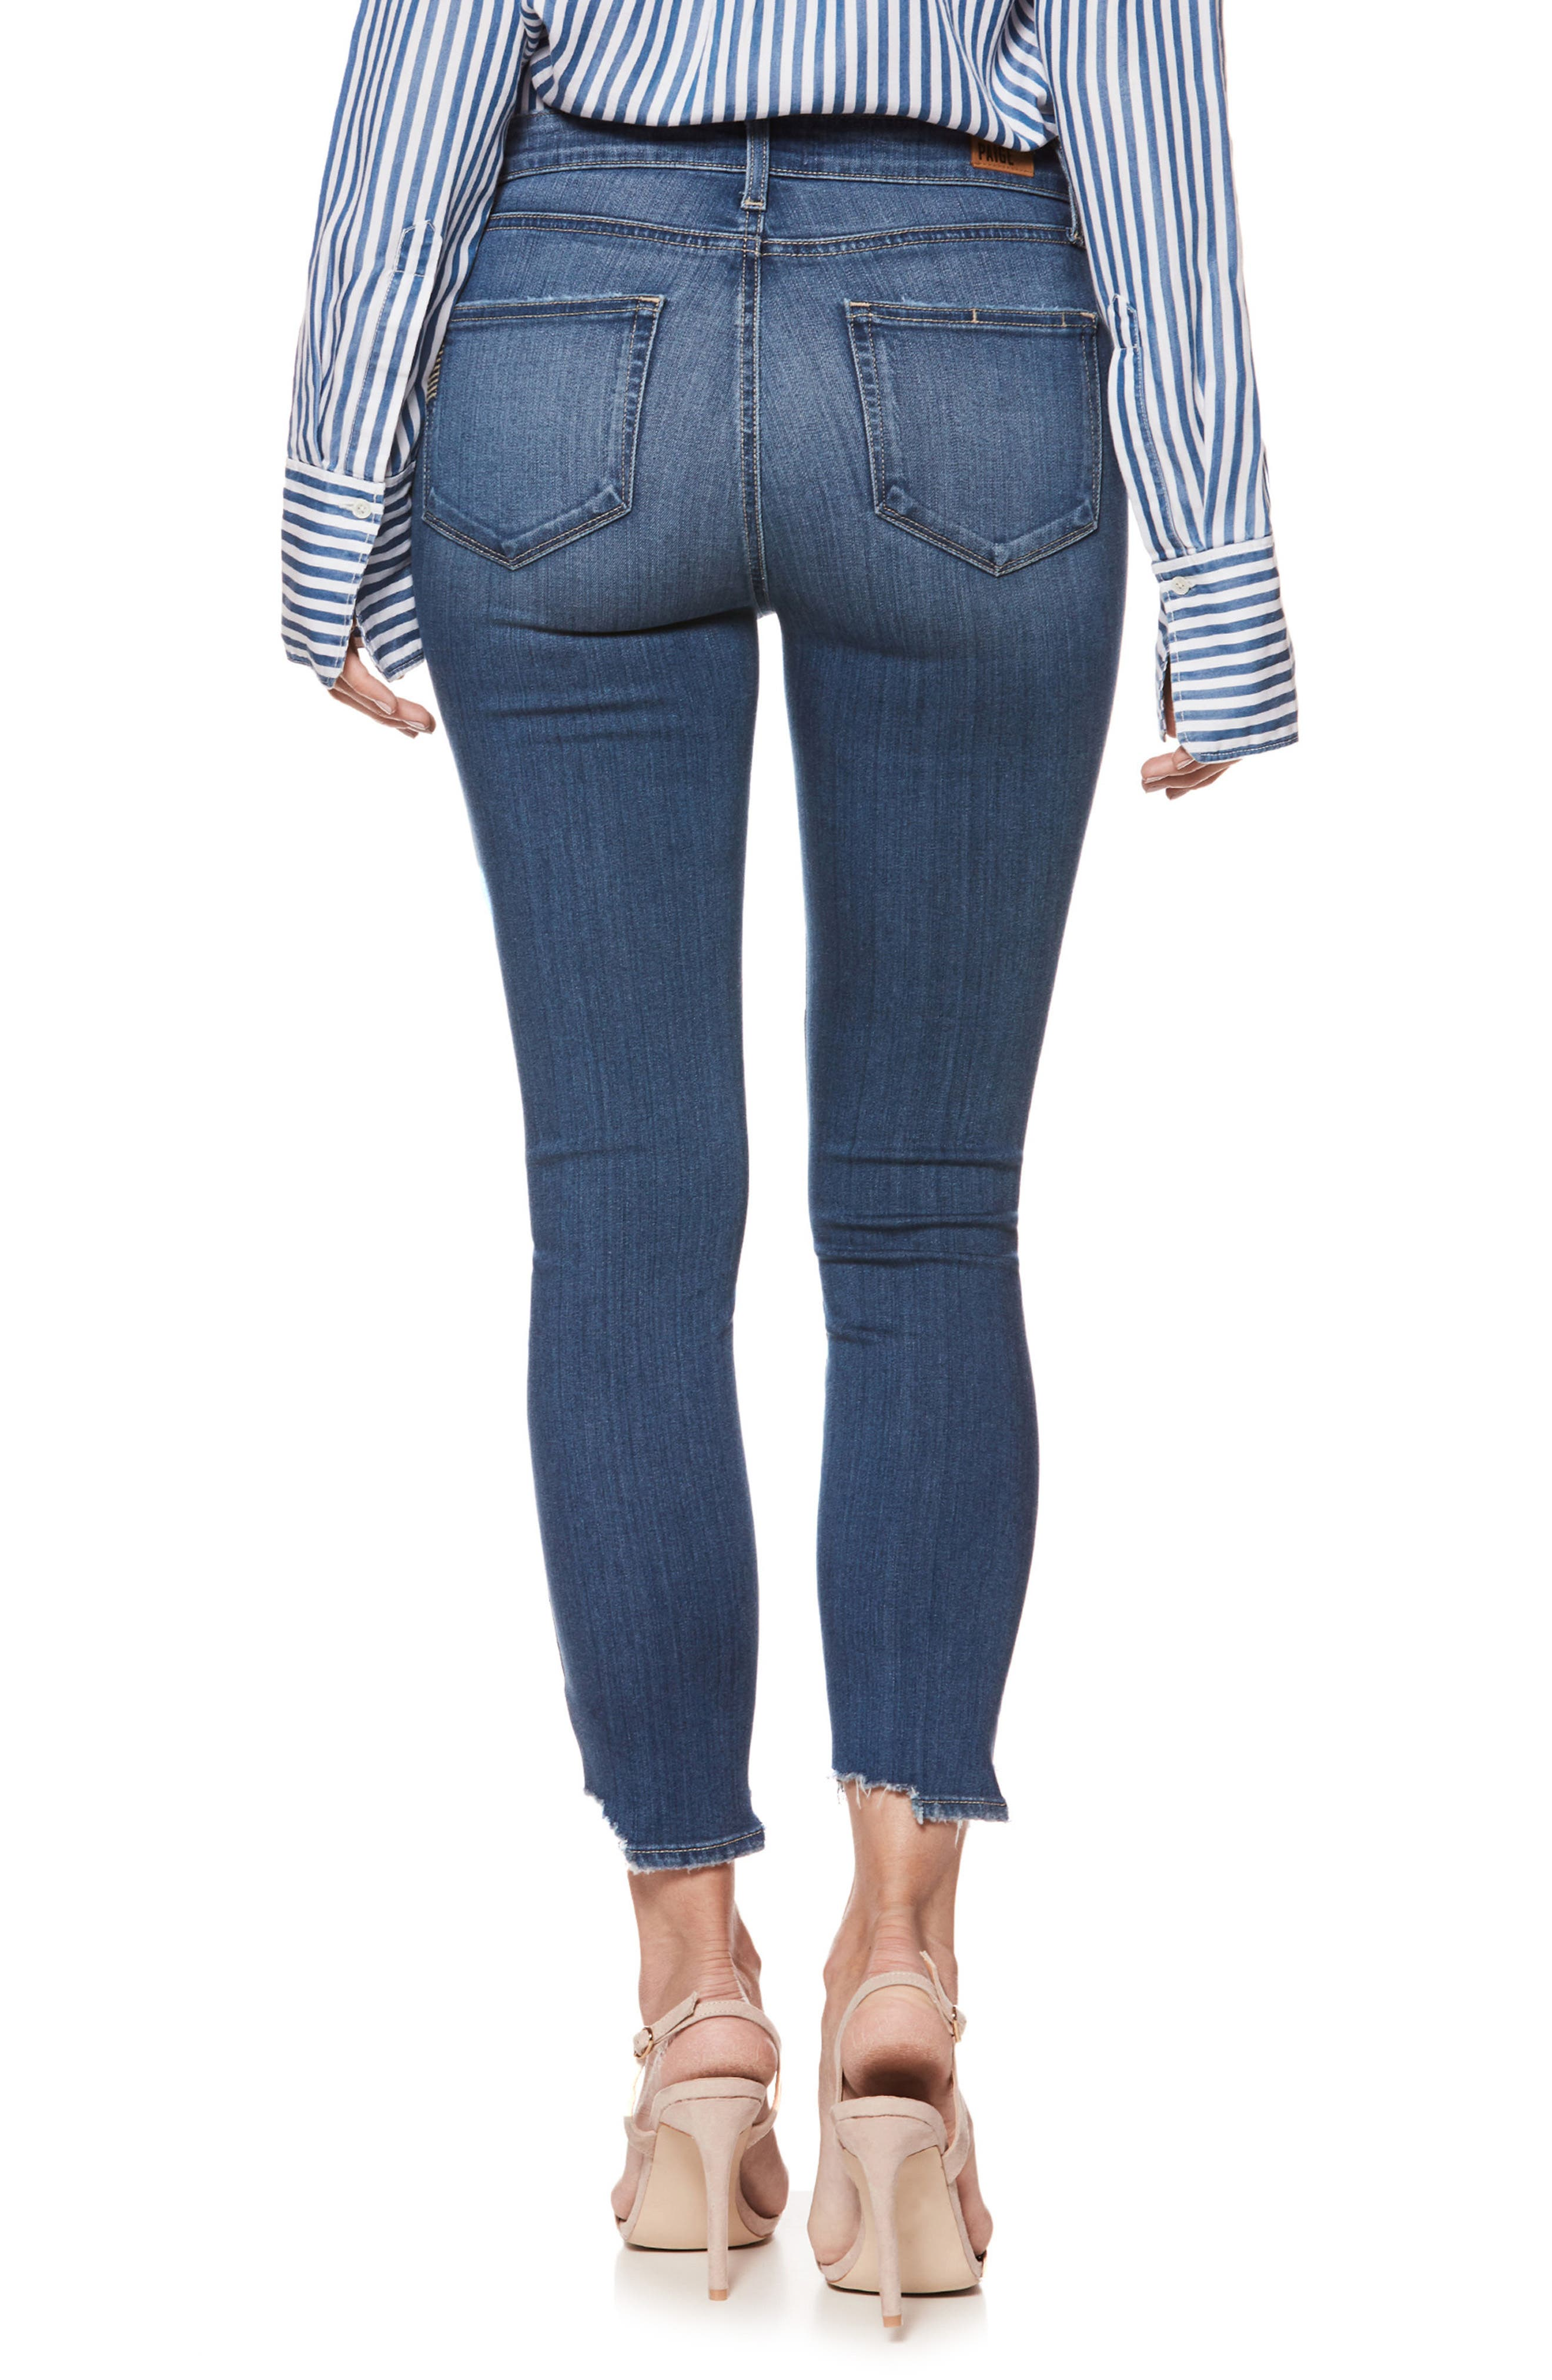 Transcend - Hoxton High Waist Crop Skinny Jeans,                             Alternate thumbnail 3, color,                             Lived In Henderson